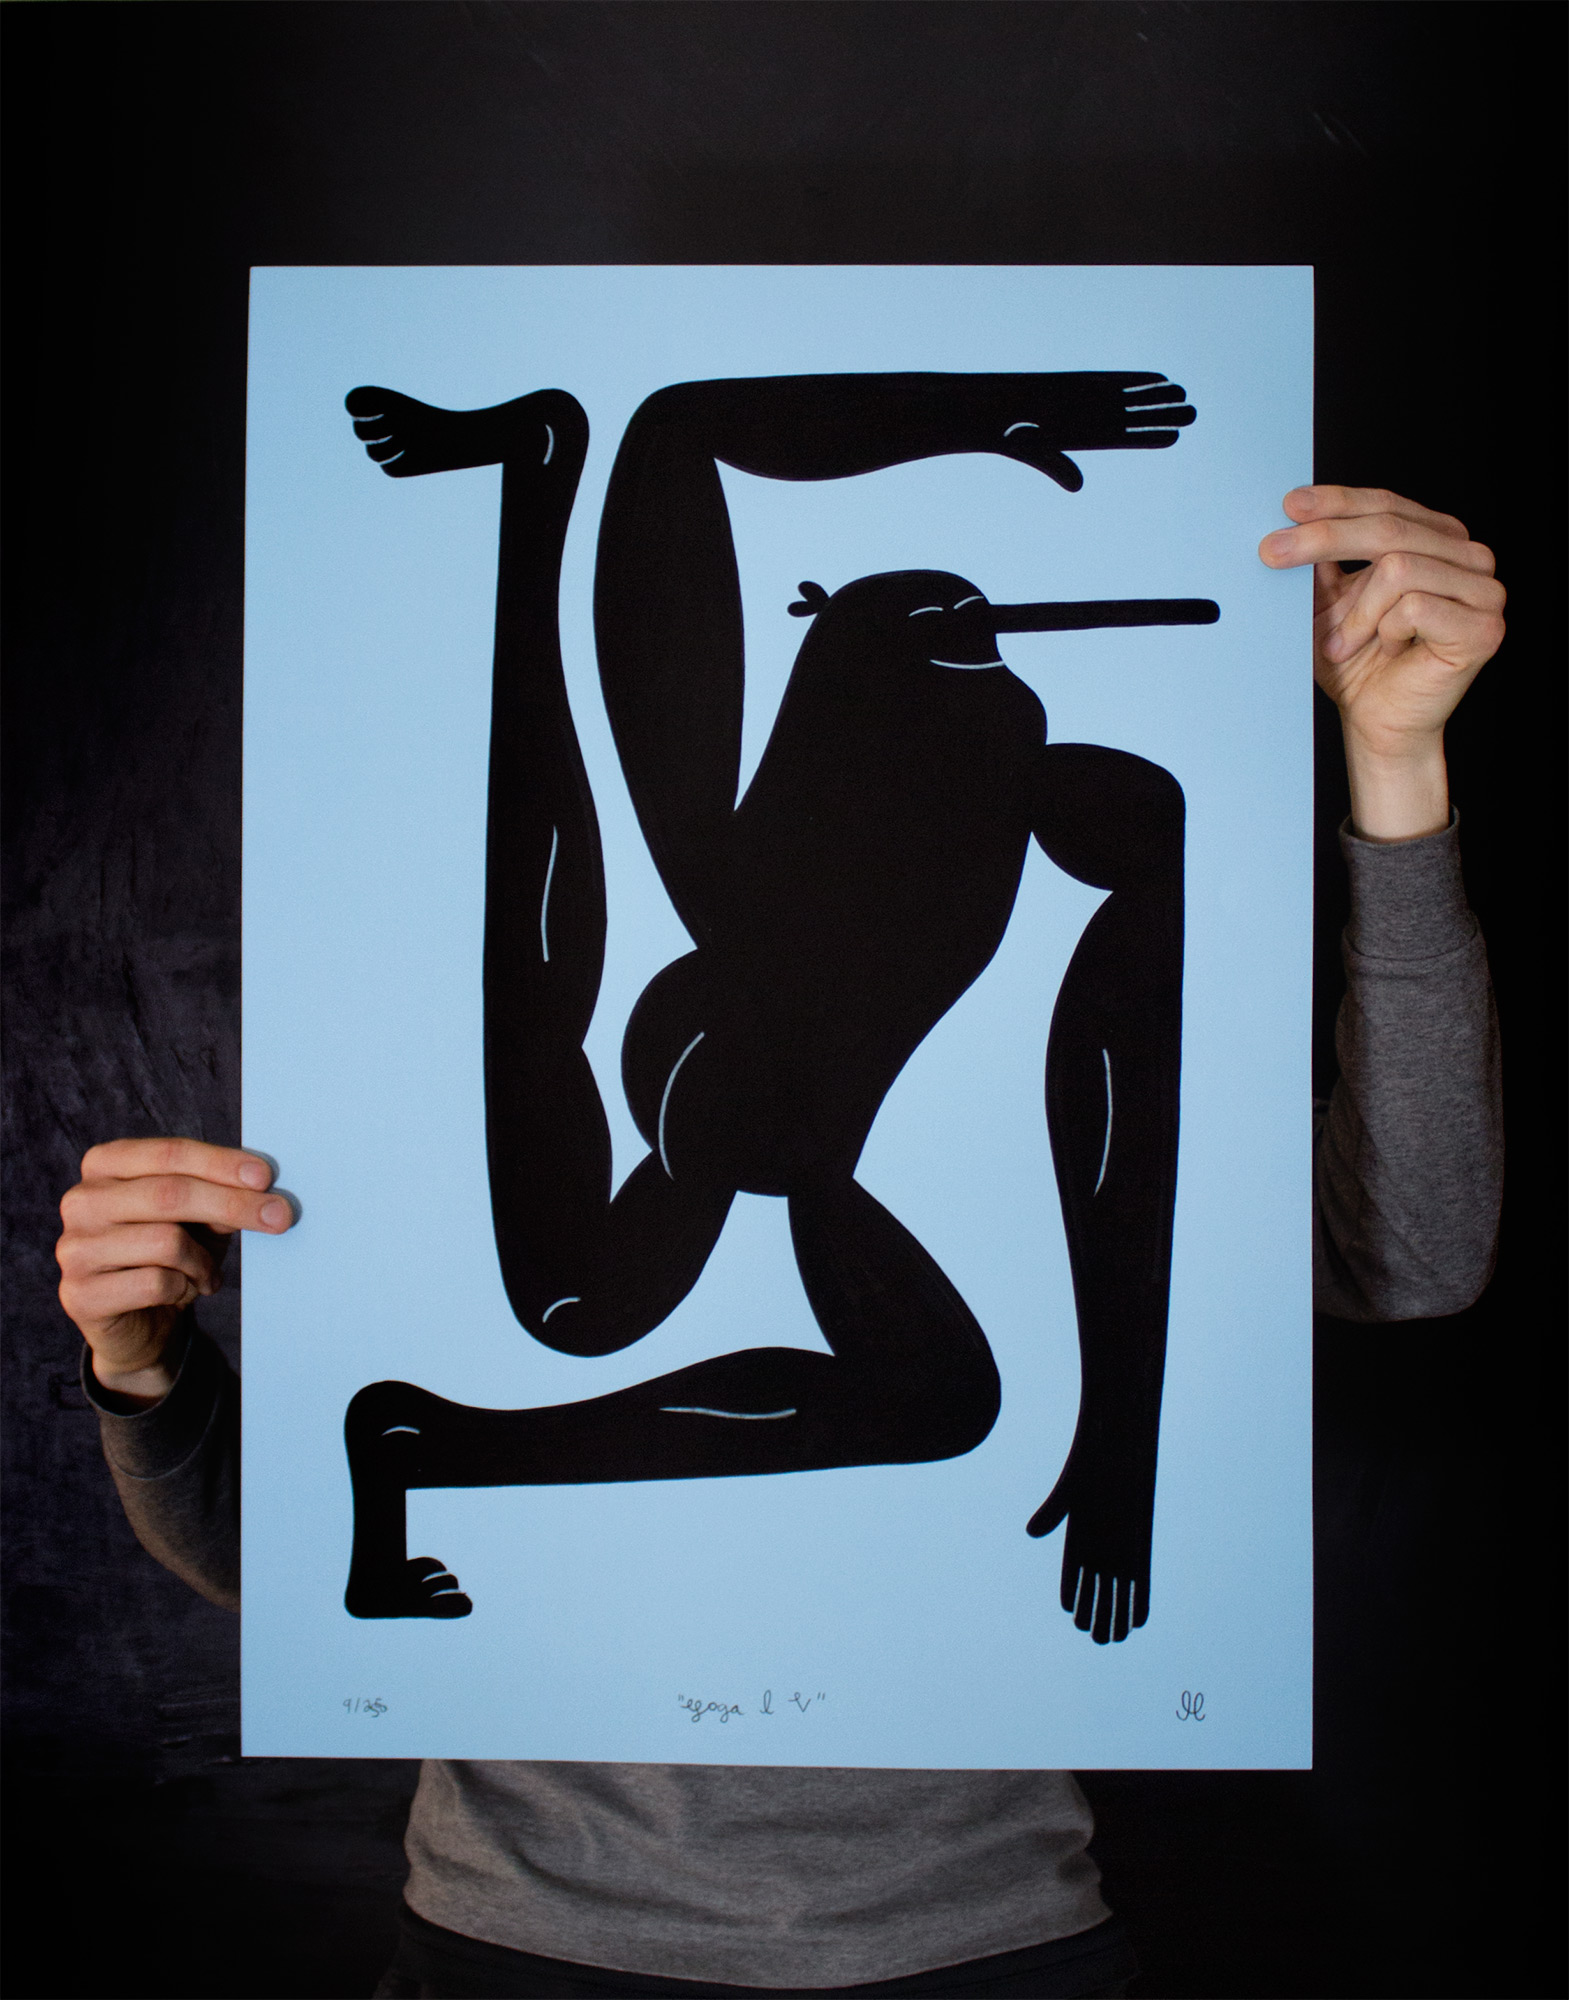 posters-prints, giclee-print, family-friendly, figurative, illustrative, monochrome, pop, portraiture, bodies, humor, movement, people, black, blue, ink, paper, abstract-forms, amusing, black-and-white, contemporary-art, copenhagen, danish, decorative, design, interior, interior-design, men, modern, modern-art, nordic, posters, prints, scandinavien, street-art, Buy original high quality art. Paintings, drawings, limited edition prints & posters by talented artists.